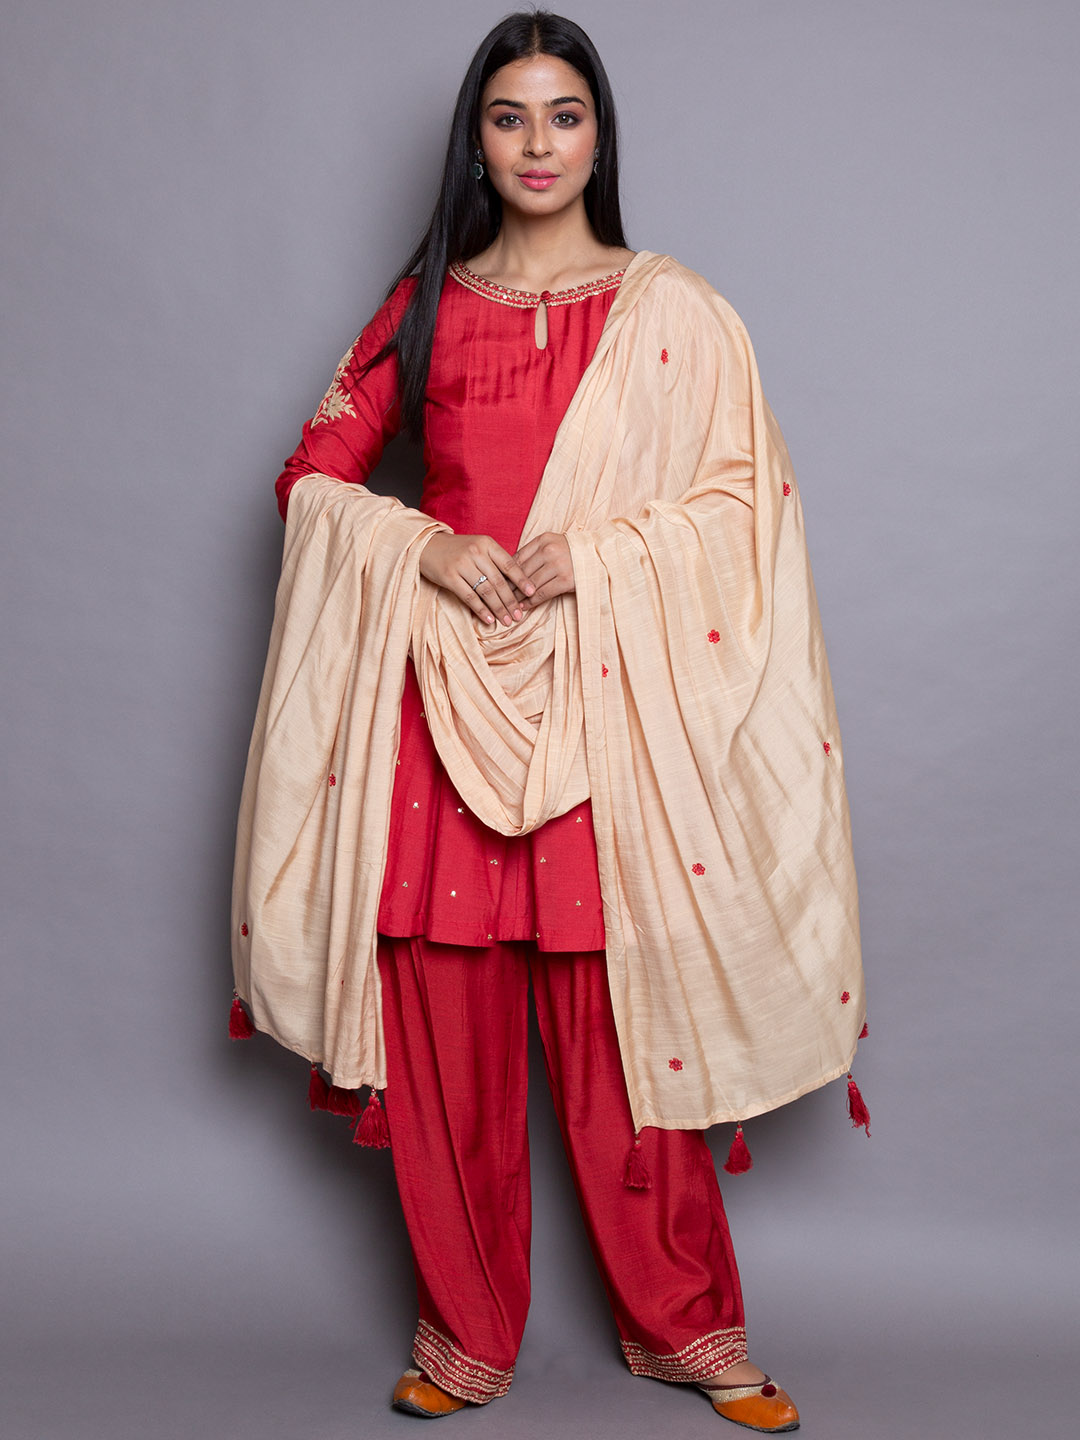 Red Frock Suit with Salwar